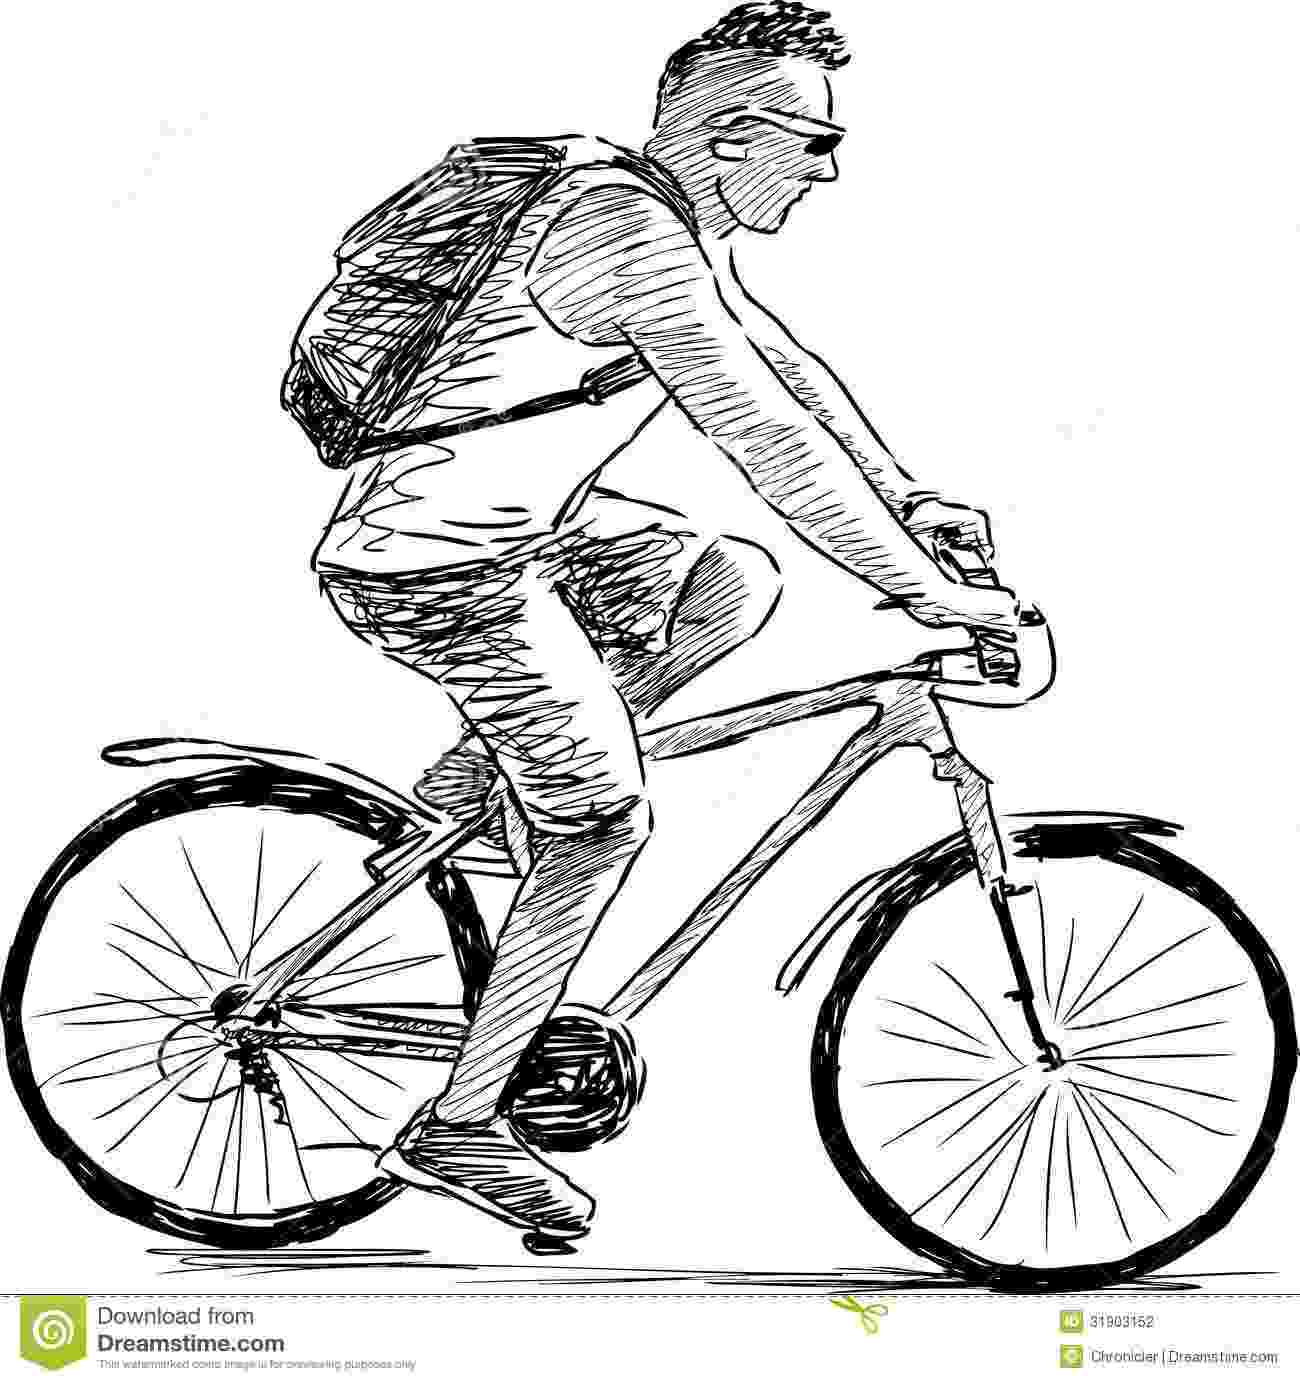 cycle sketch man riding a cycle stock vector illustration of male cycle sketch